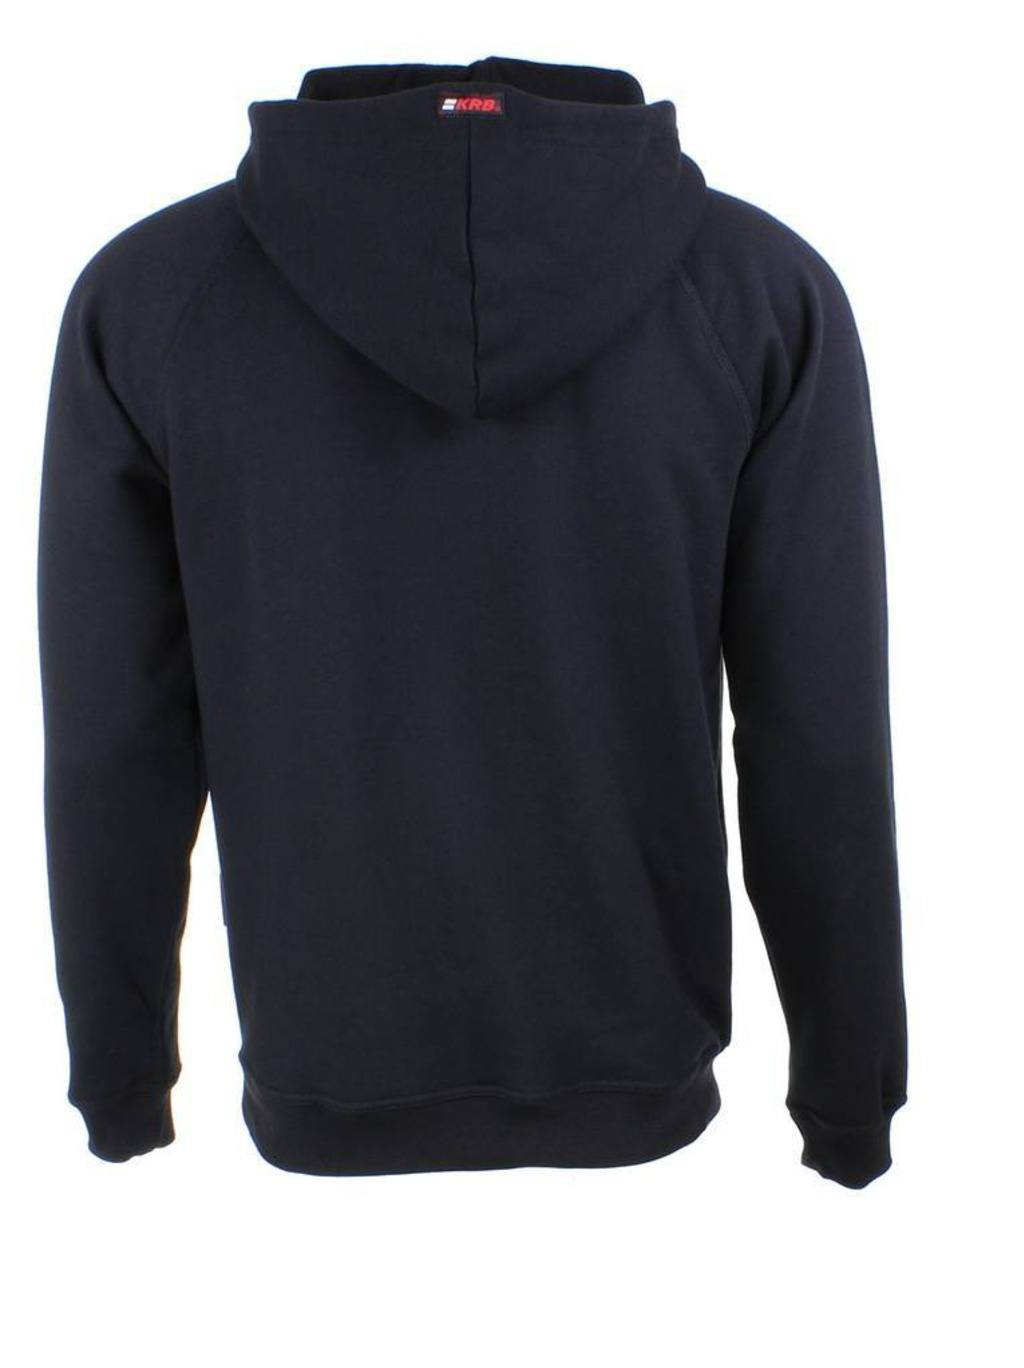 DAVID Hooded Sweater